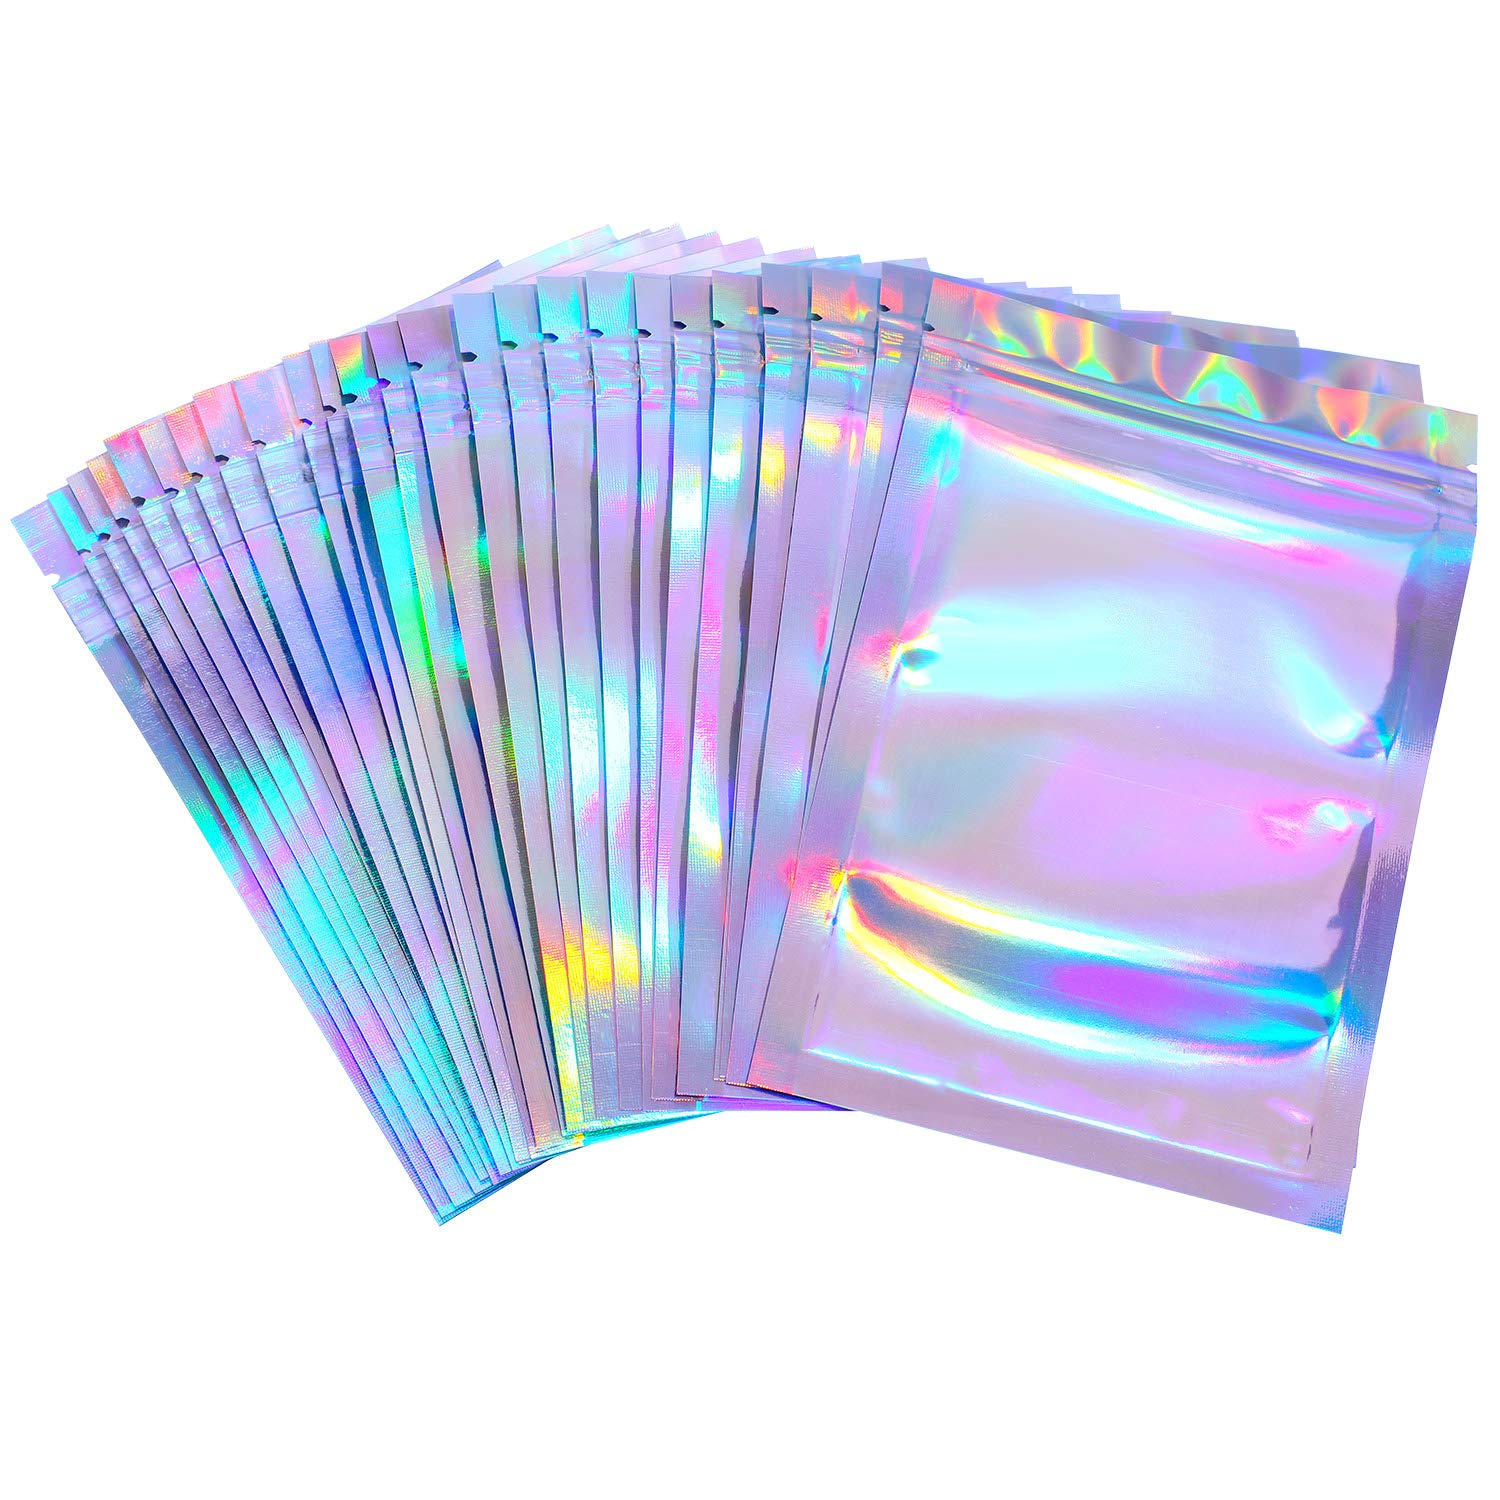 Blulu 100 Pieces Resealable Smell Proof Bags Foil Pouch Bag Flat Ziplock Bag for Party Favor Food Storage, Holographic Color (3 x 4 Inches) by Blulu